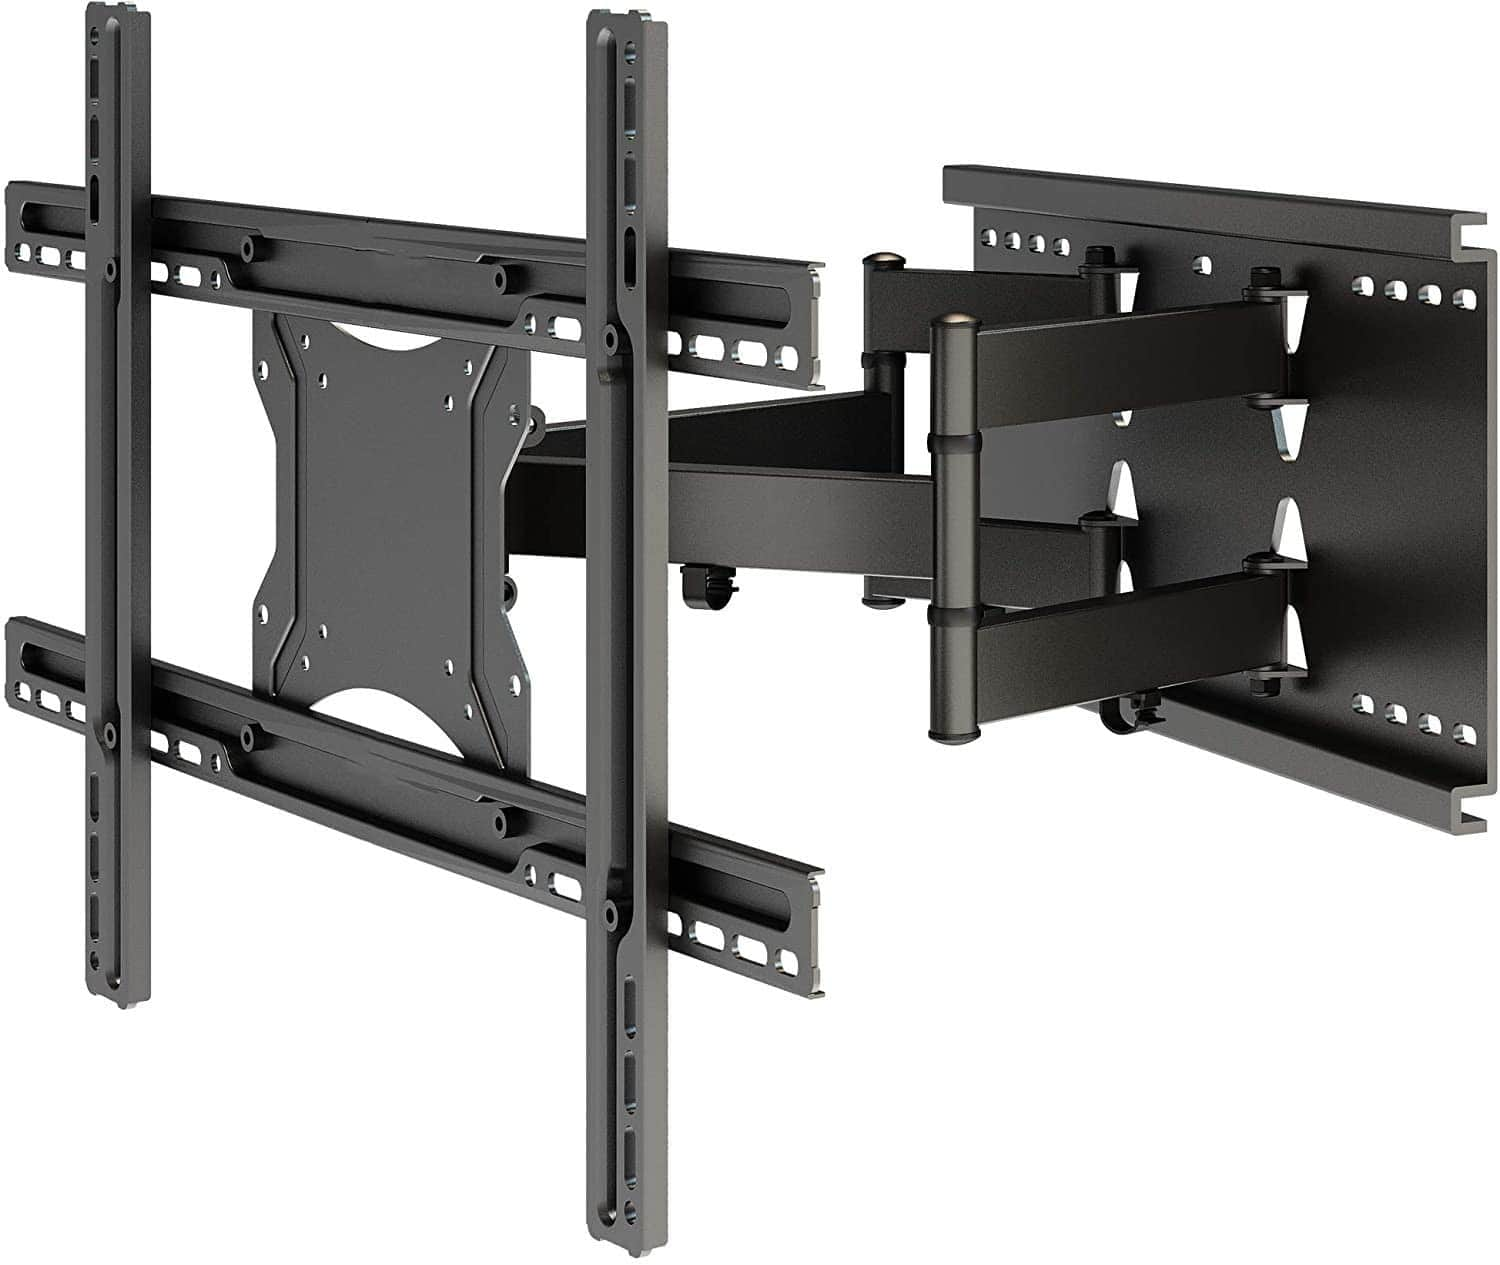 "Full Motion Articulating Wall Mount (37""-75"" TVs) + Free Shipping $29.99"